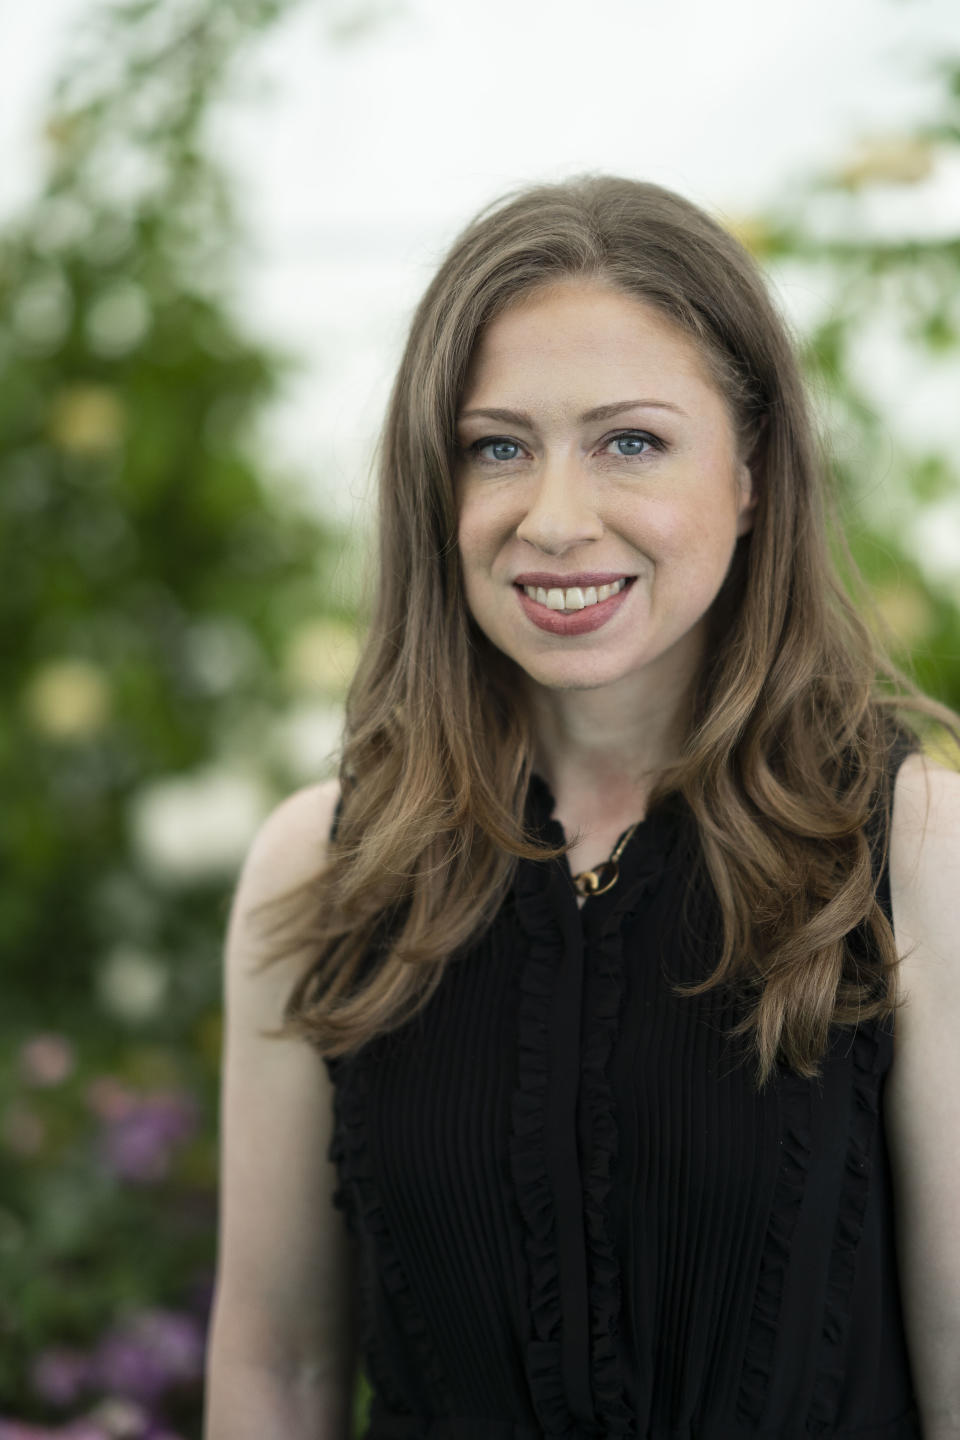 Chelsea Clinton has been target by online trolls. (Photo: David Levenson/Getty Images)